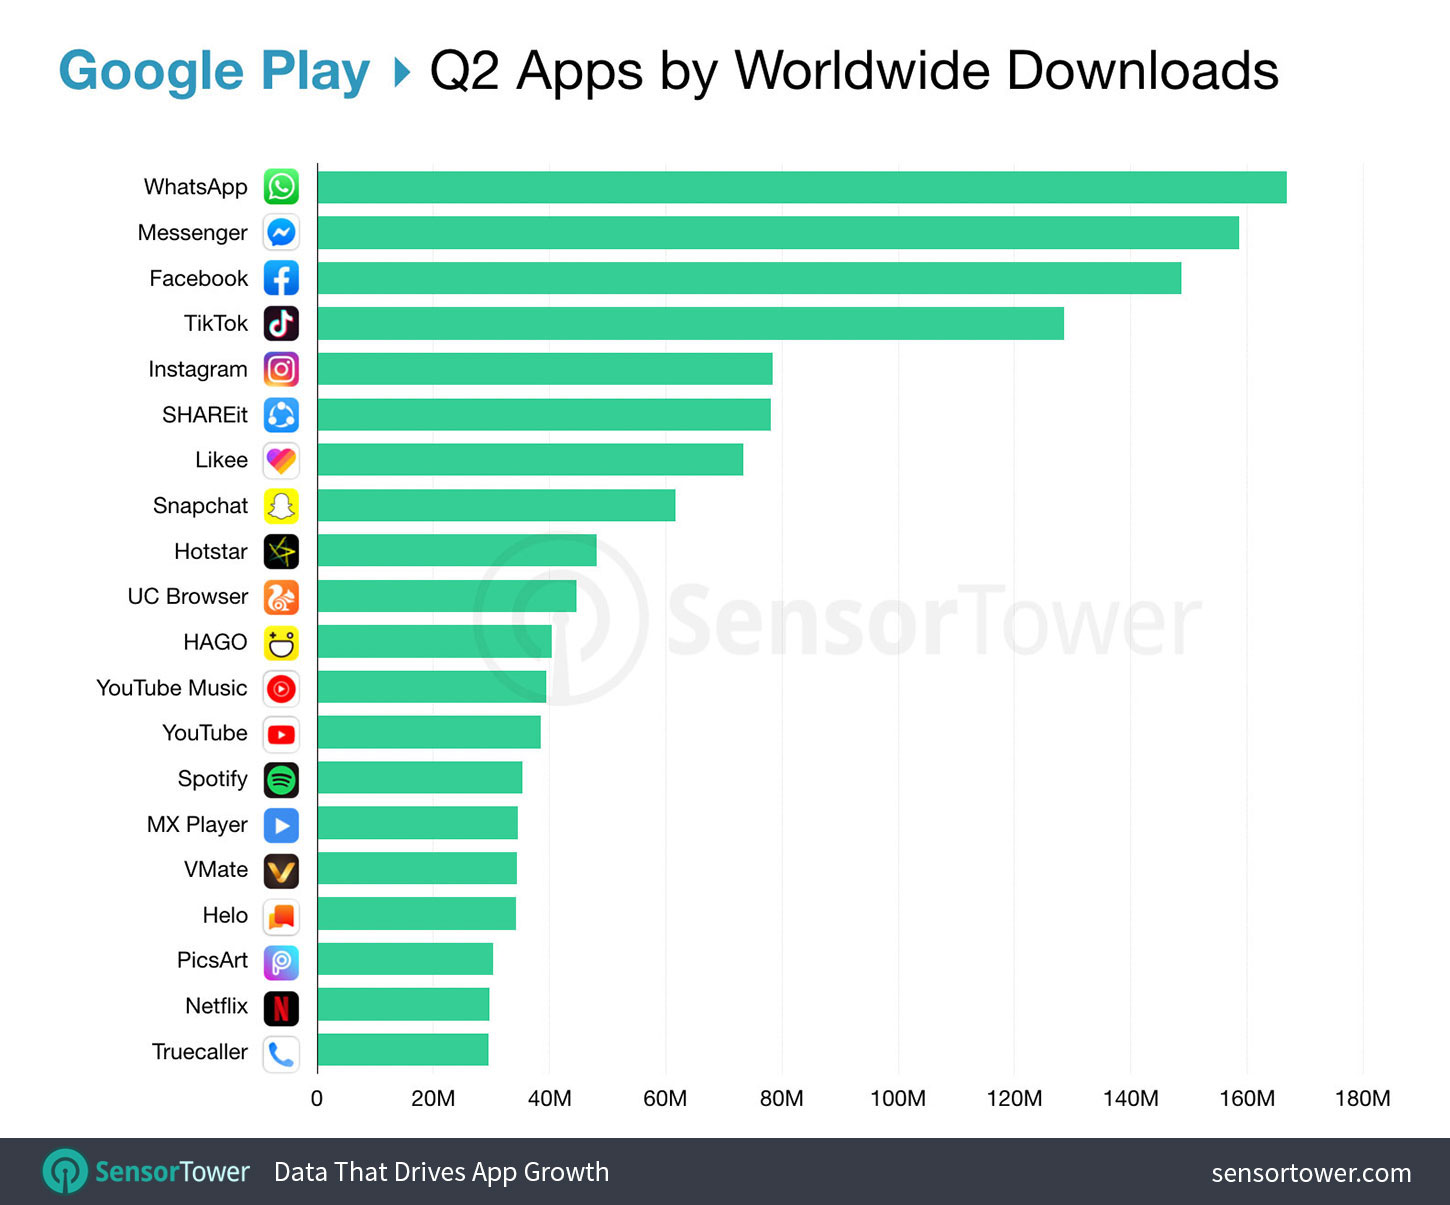 Top Google Play Apps Worldwide for Q2 2019